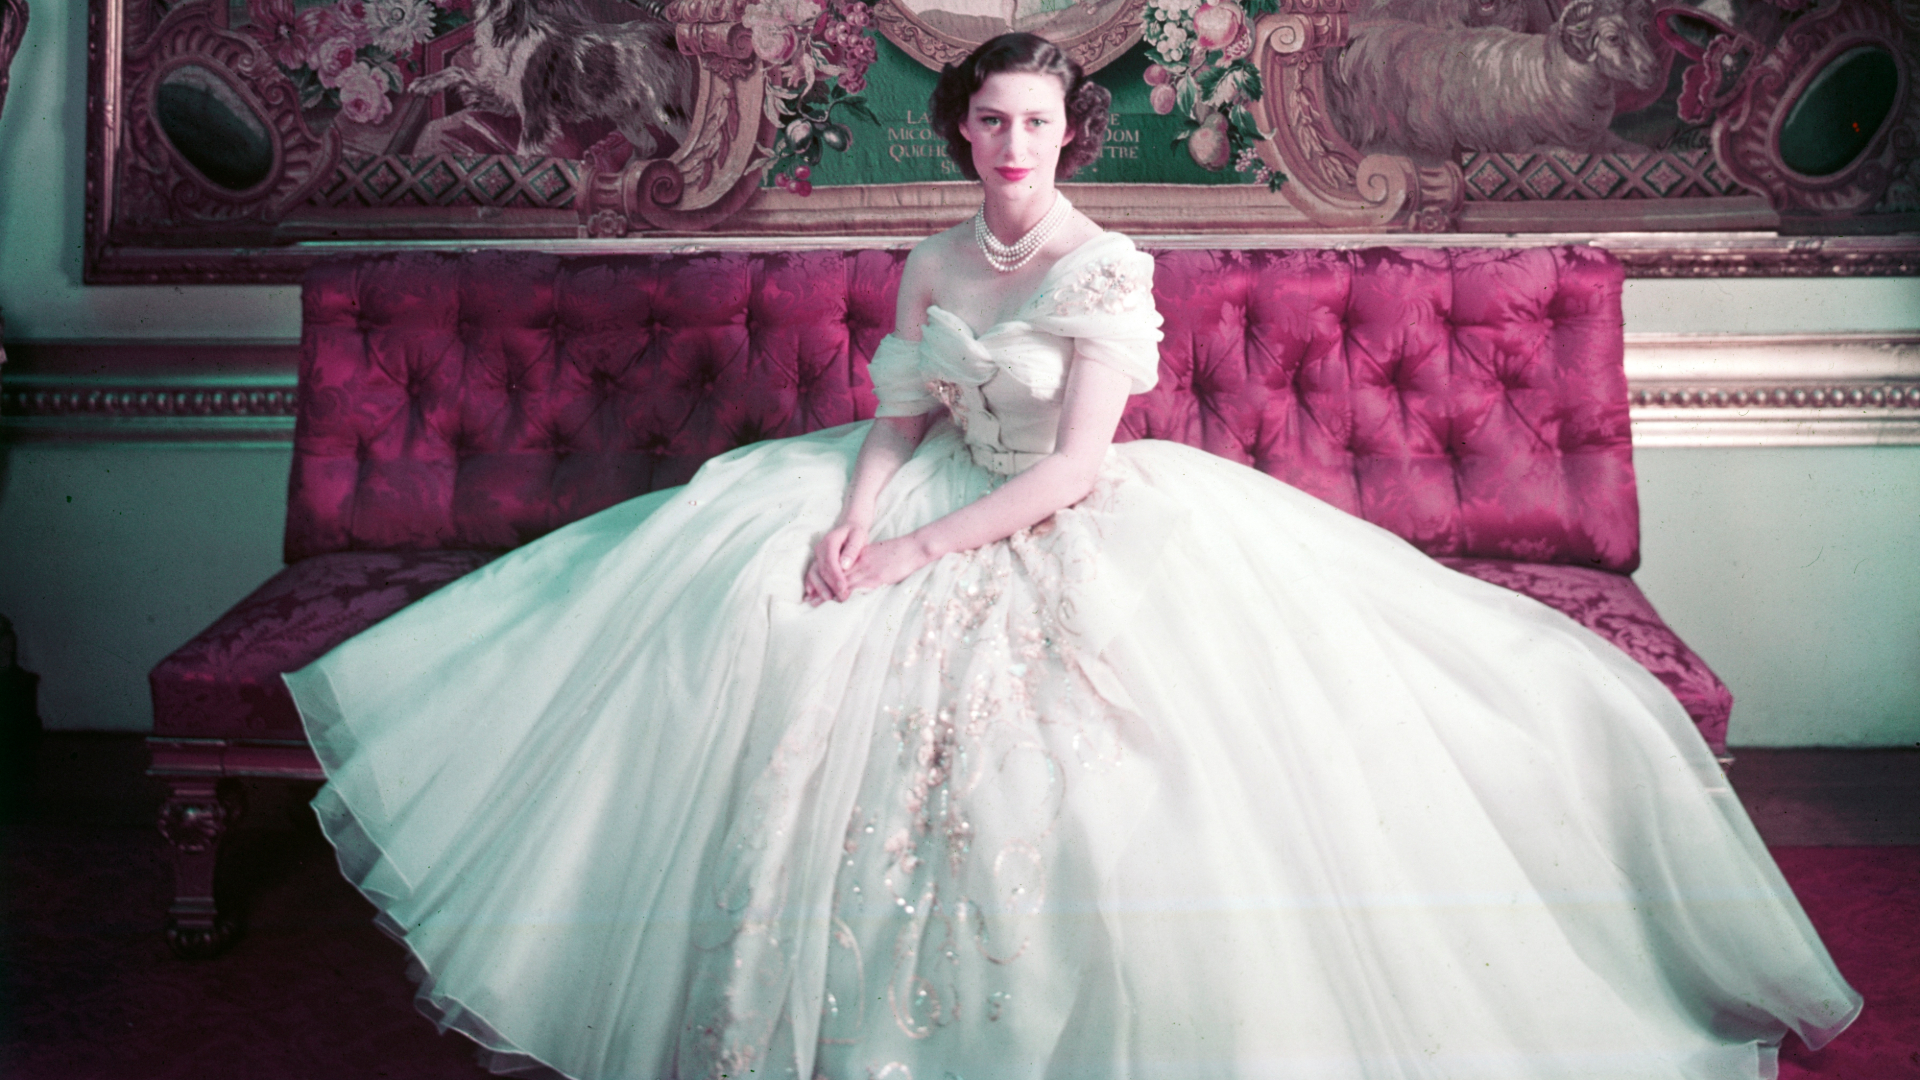 Photograph of Princess Margaret wearing a white Dior gown as part of the Christian Dior: Designer of Dreams exhibition at the V&A